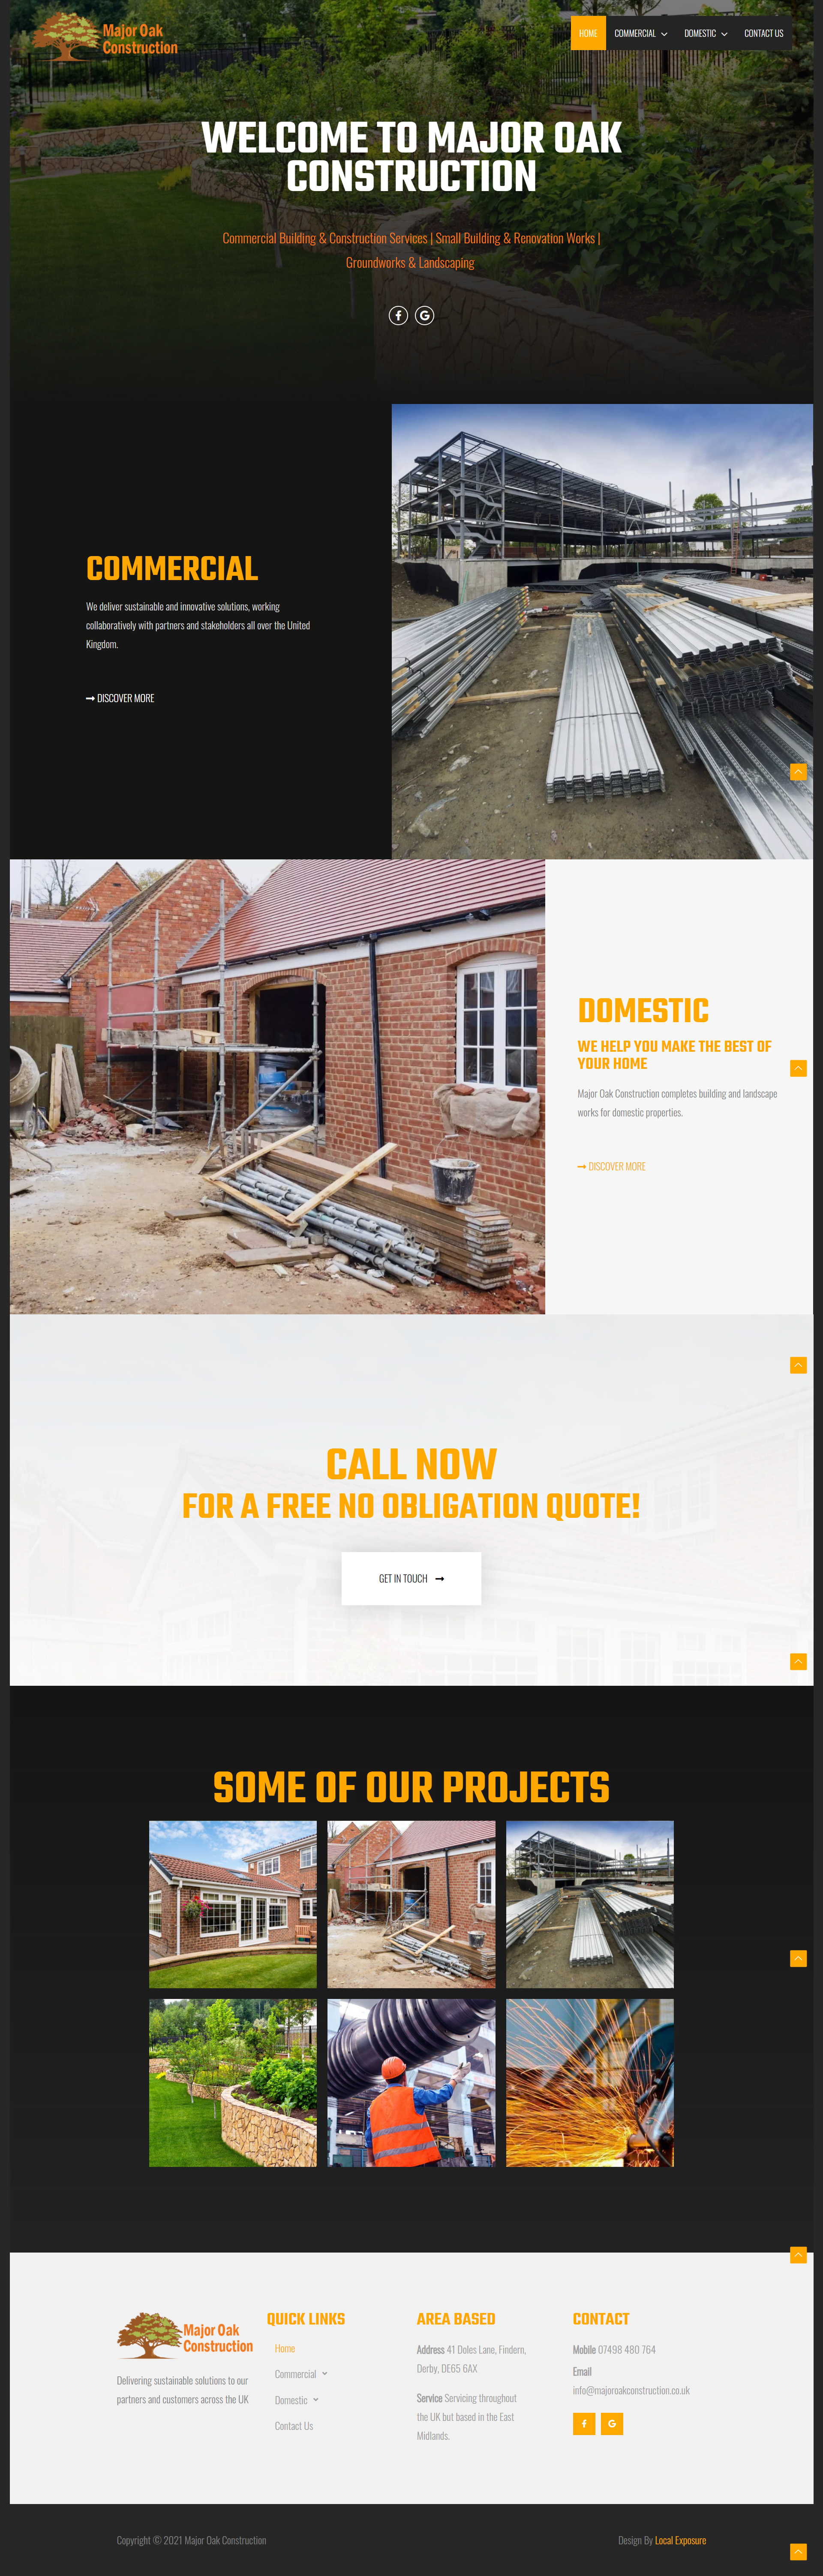 Construction Company Web Design Example